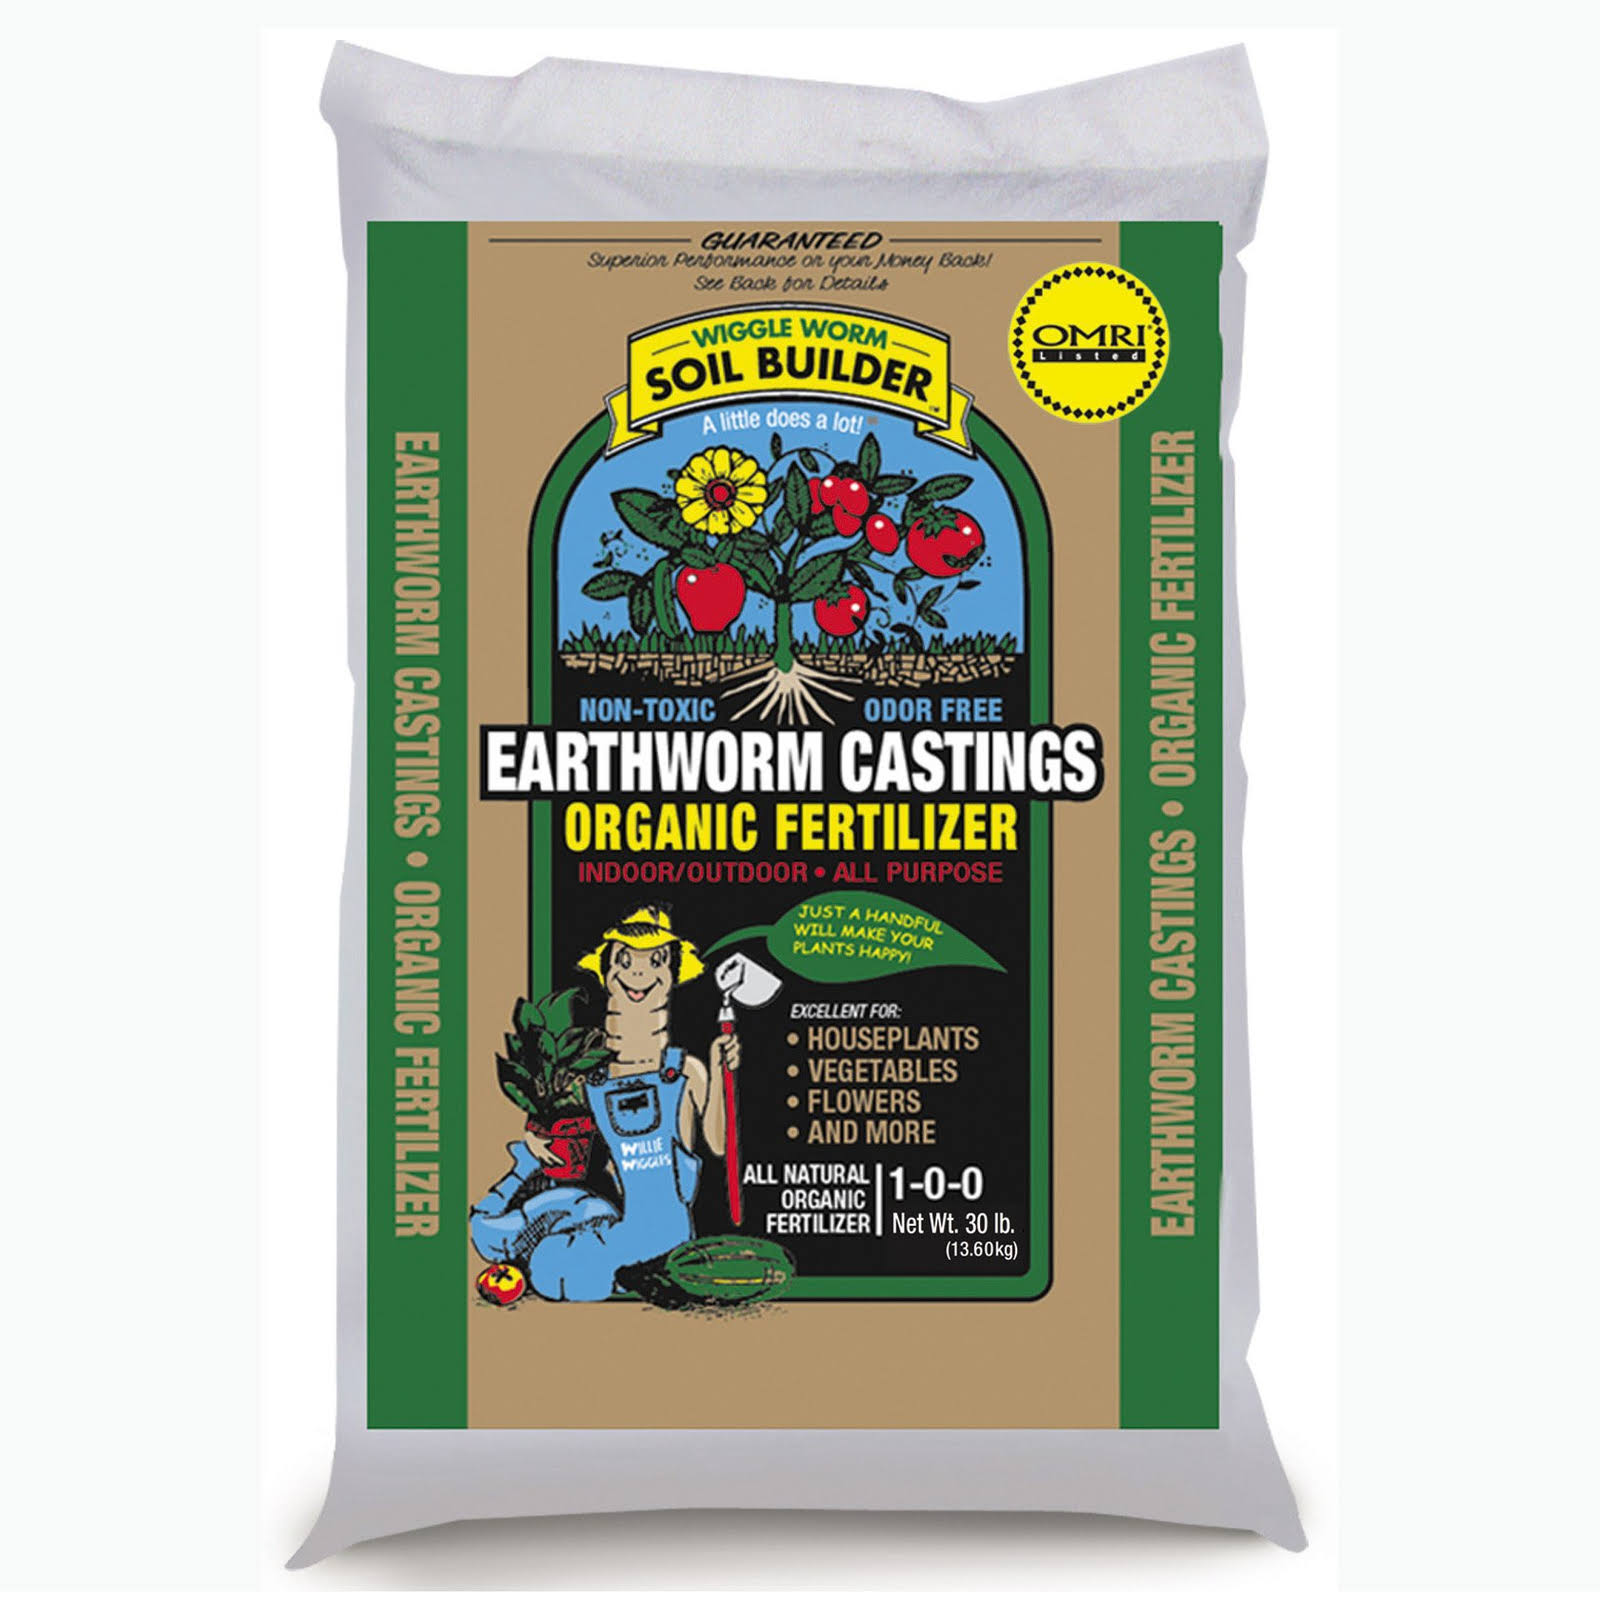 Wiggle Worm Soil Builder Earthworm Castings Organic Fertilizer Omri Bag - 30lbs